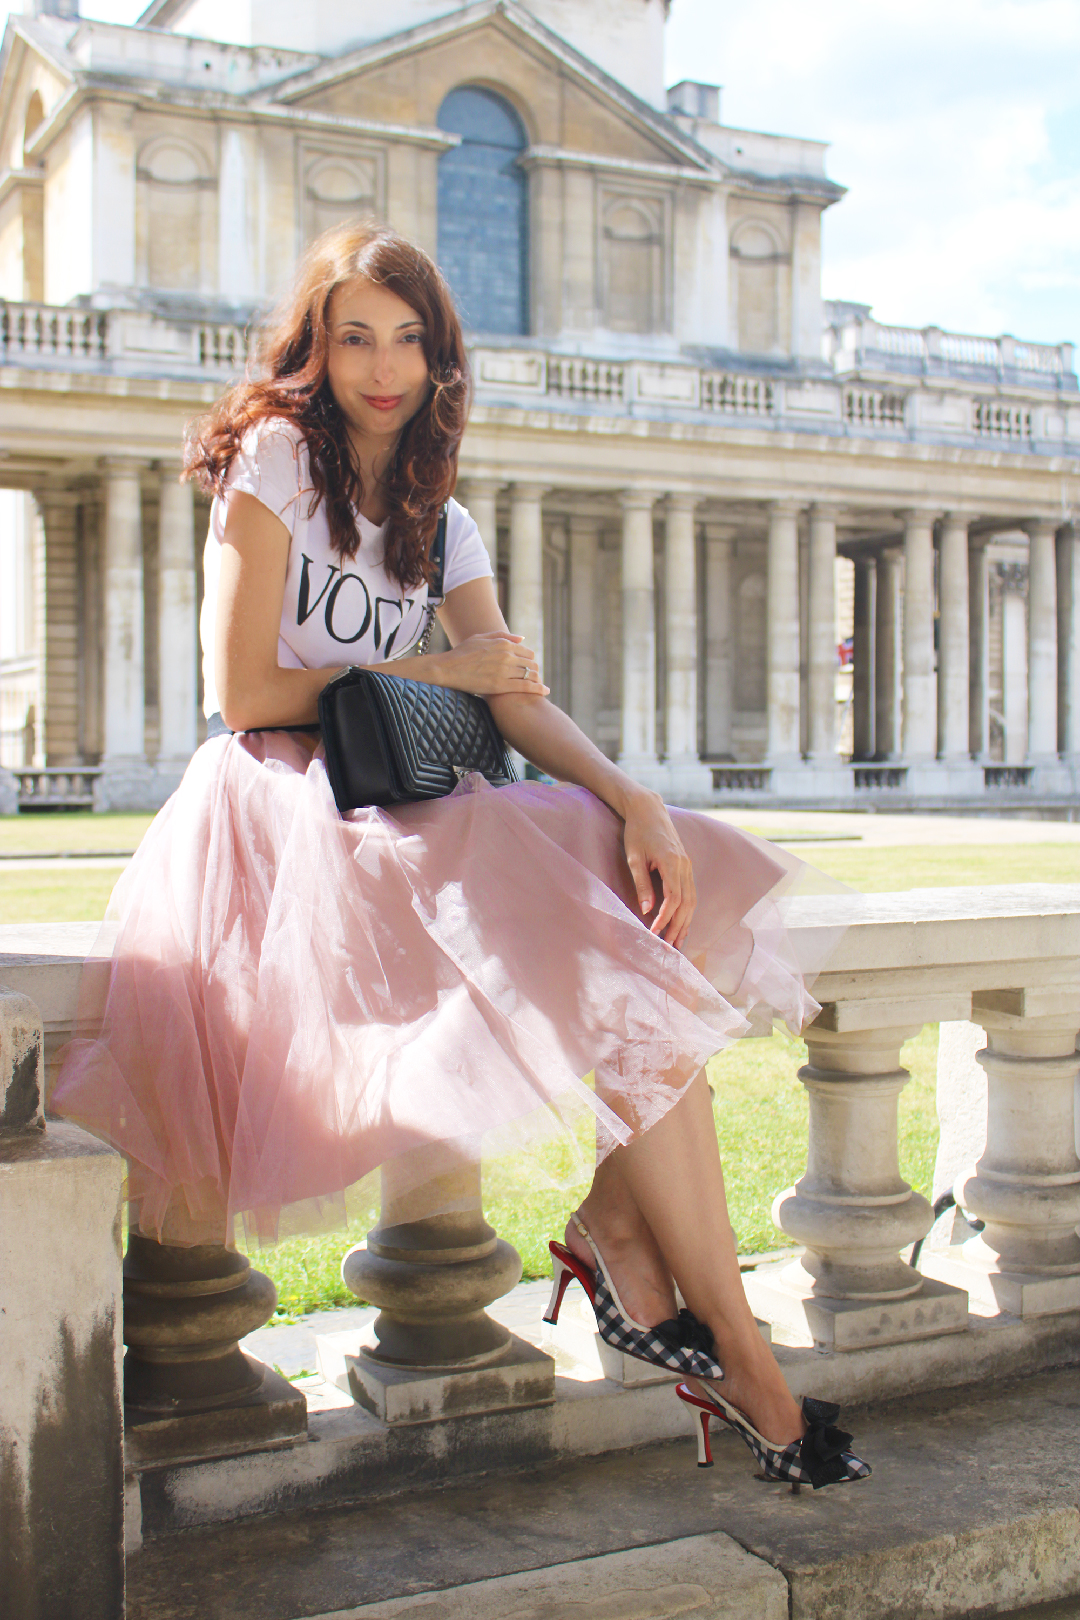 wearing a tulle skirt without looking like a ballerina